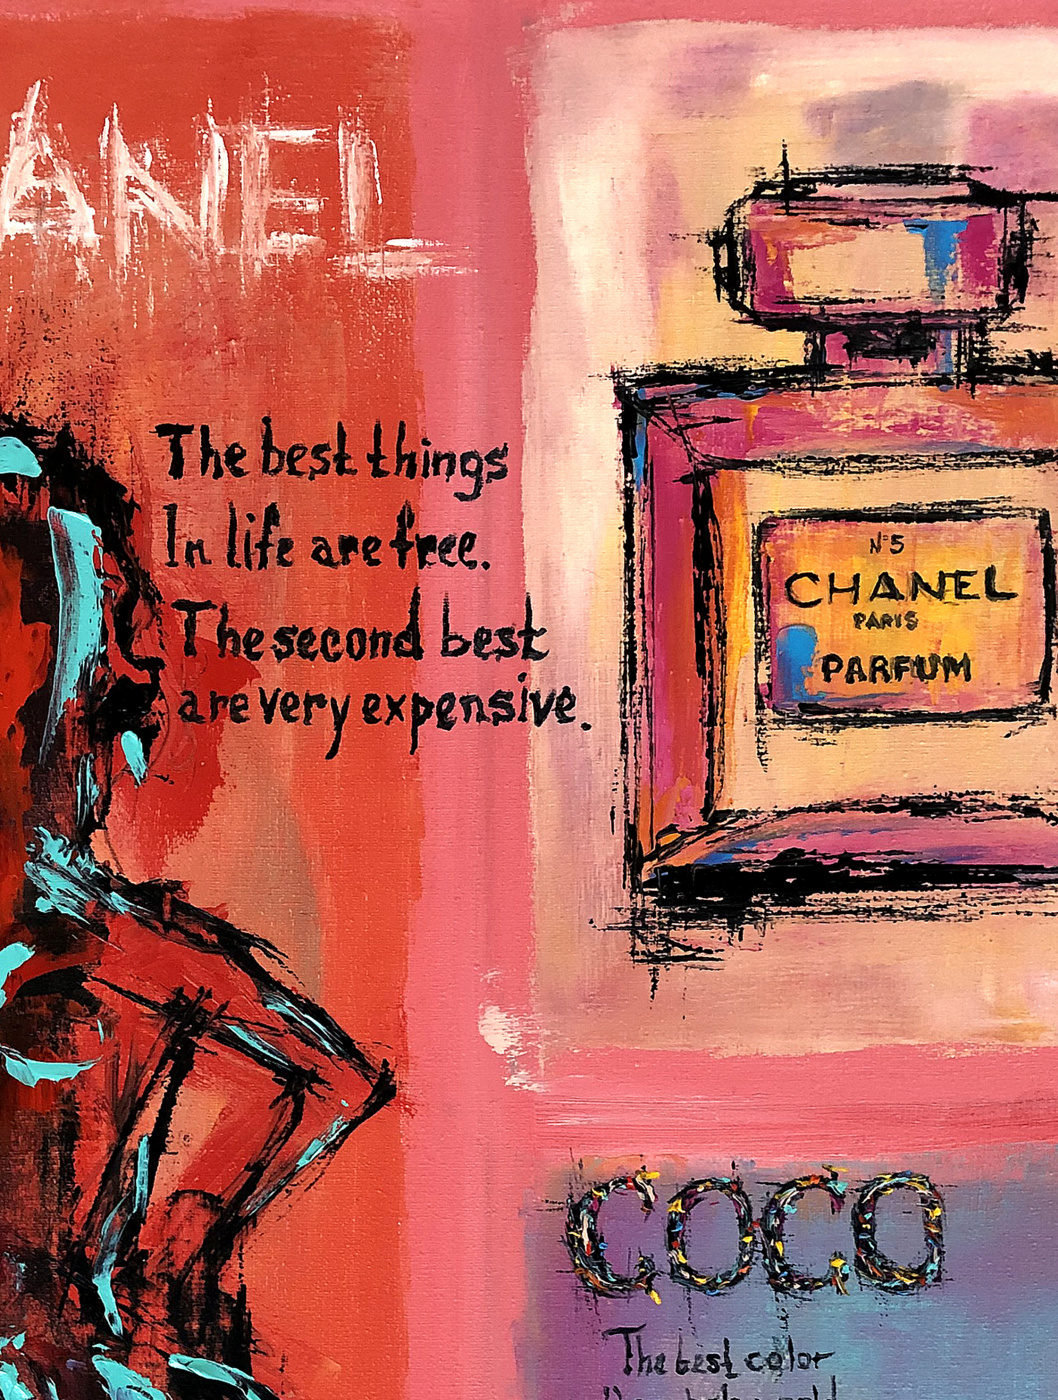 Die for Chanel